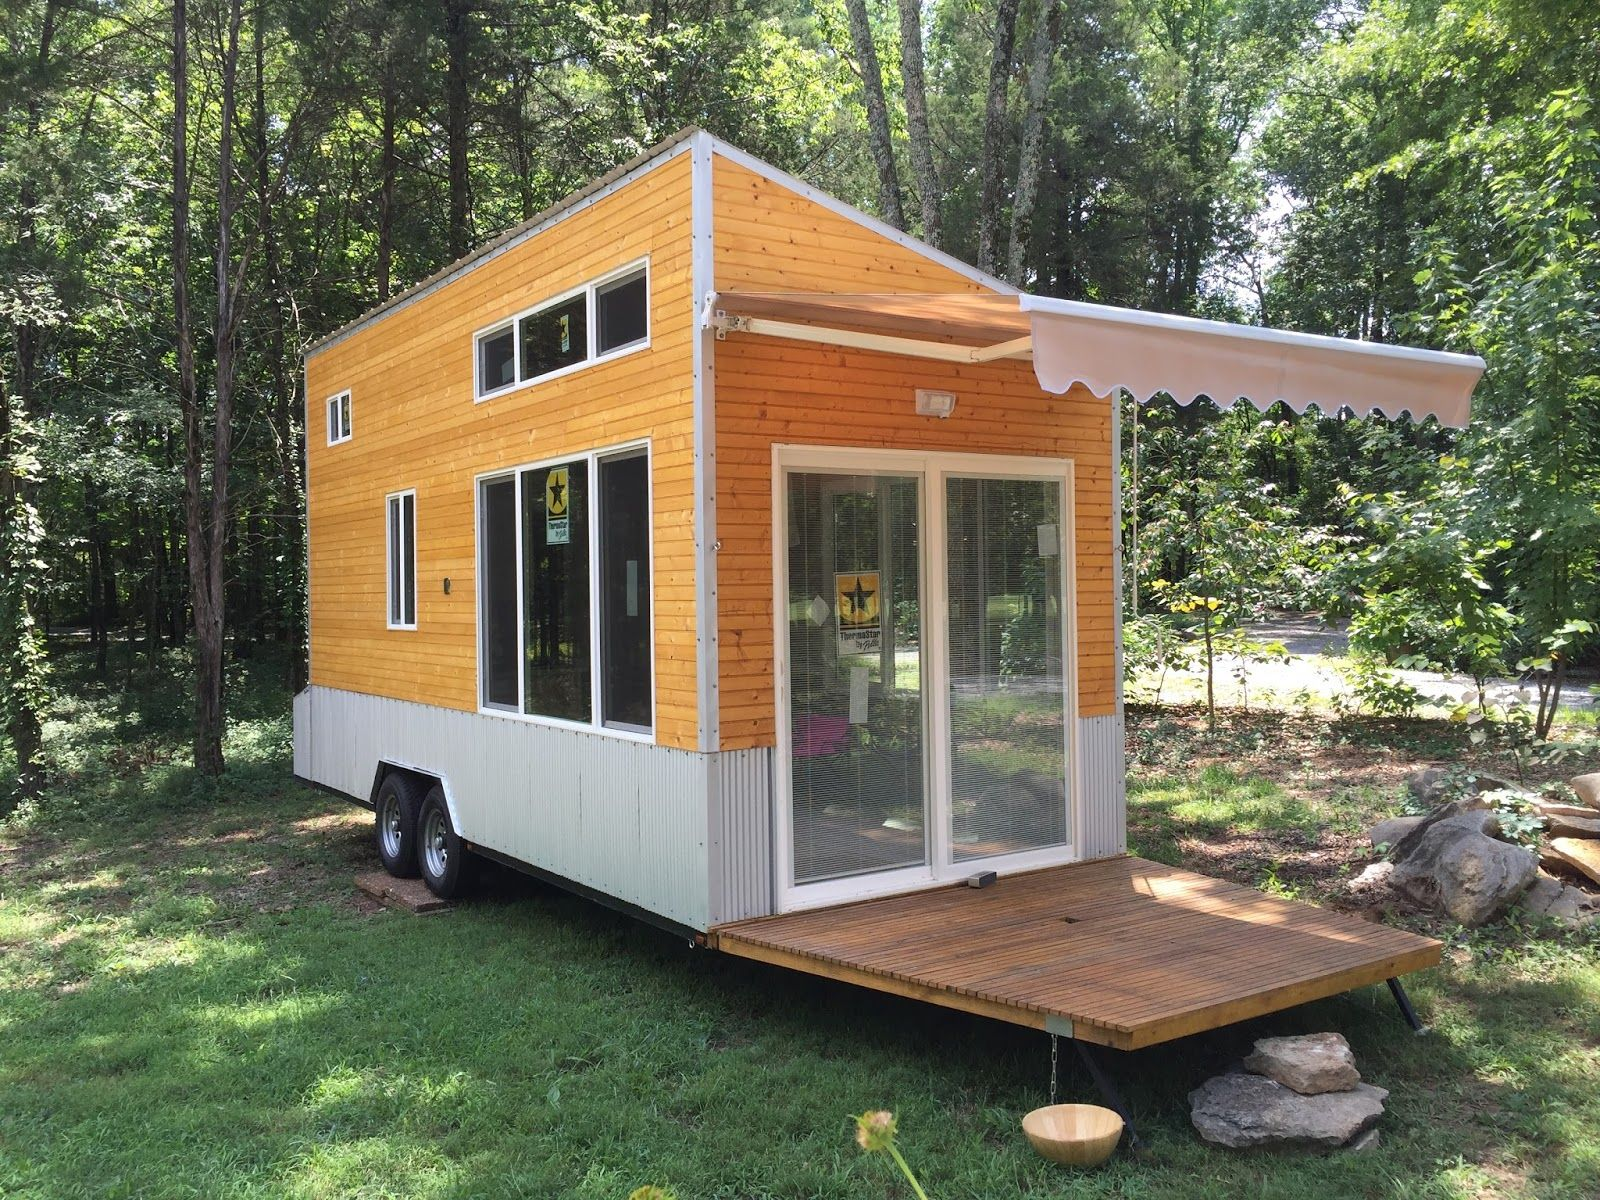 Tiny houses on trailers for sale - A Unique Off Grid Tiny House Tiny House Available For Sale In Nashville